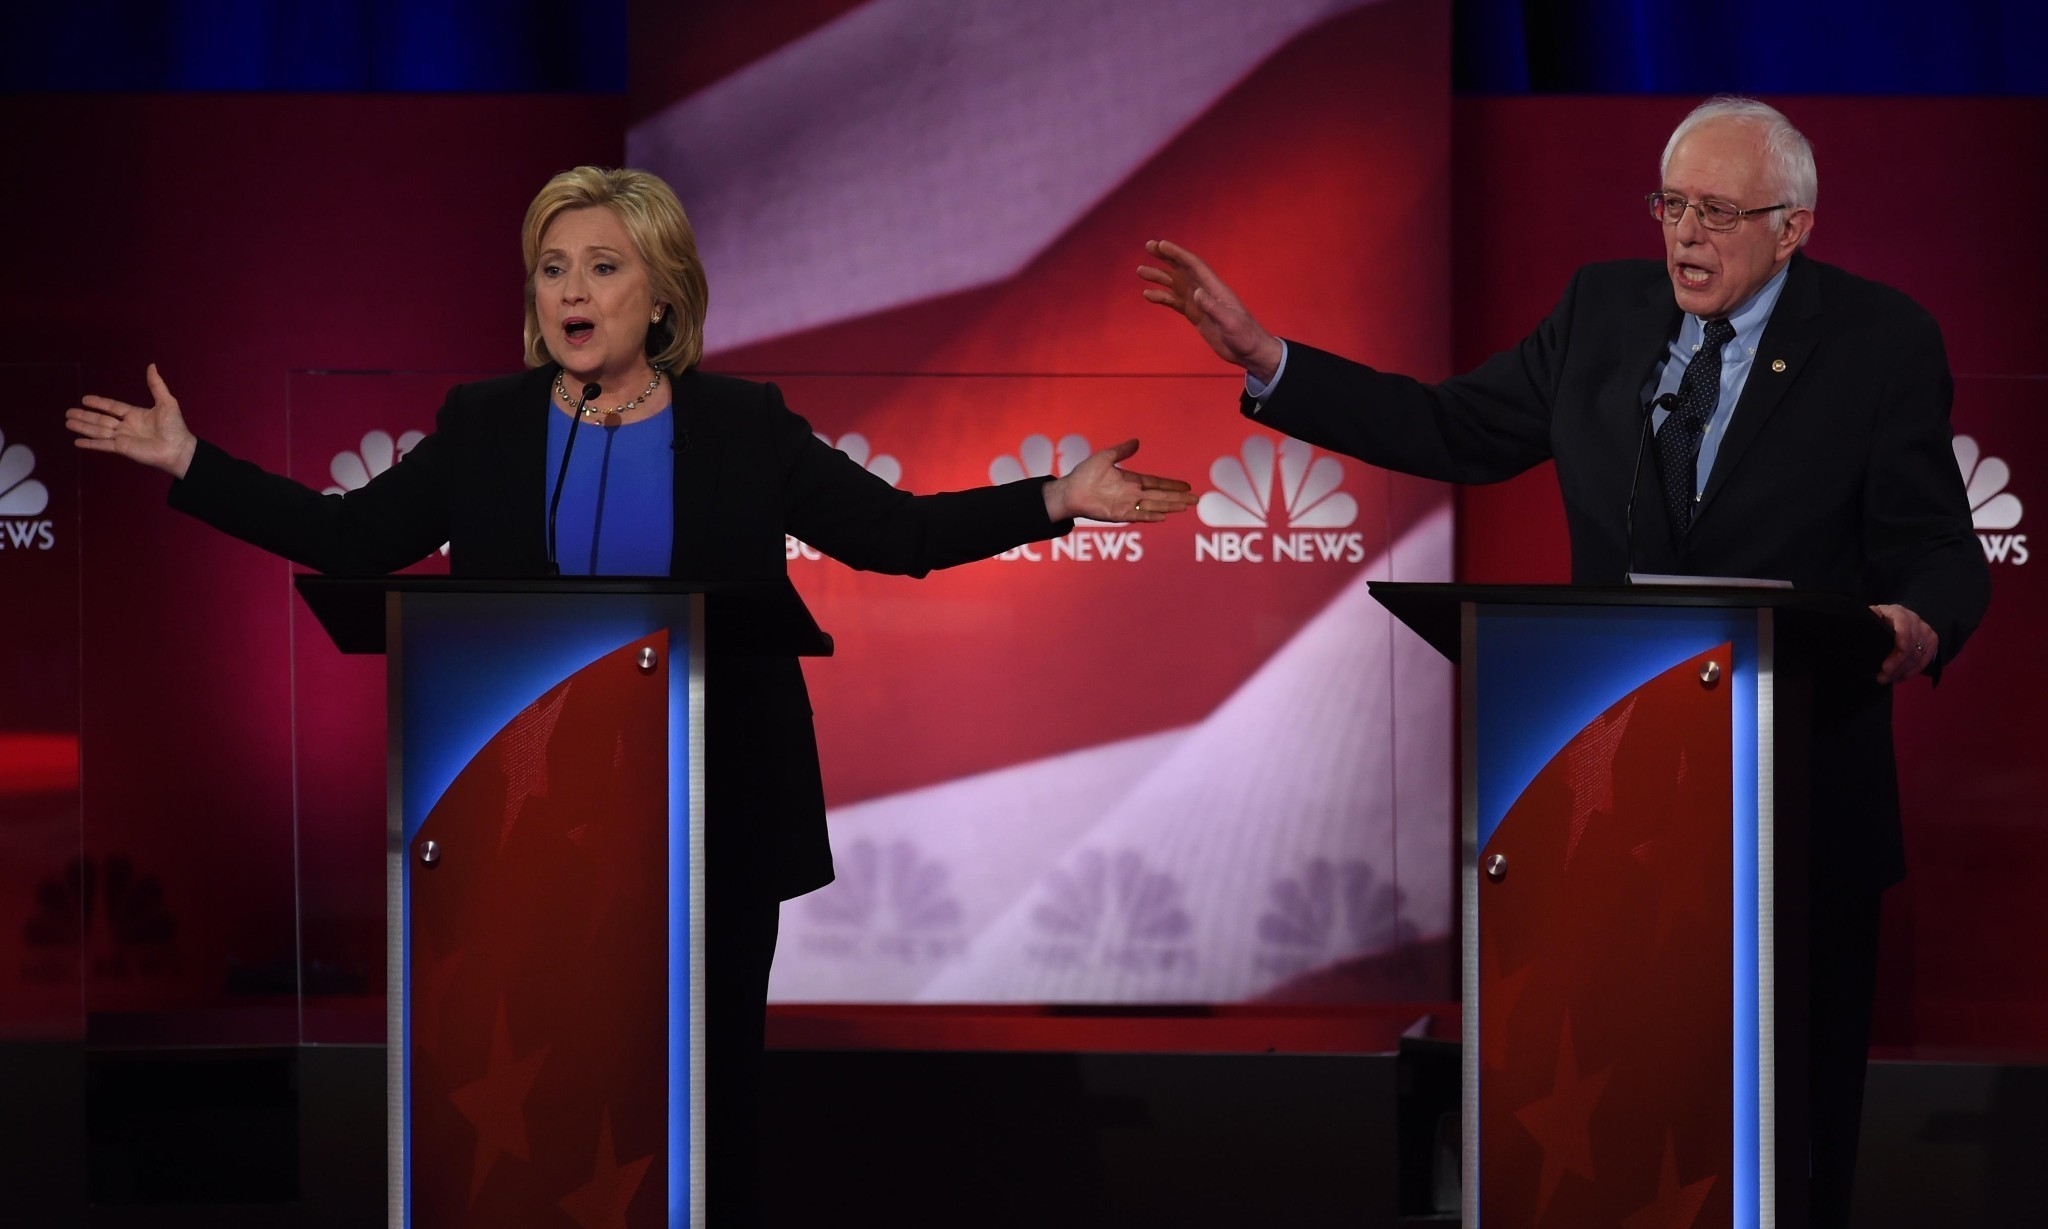 Clinton and Sanders duel on Wall Street and healthcare in Democratic debate